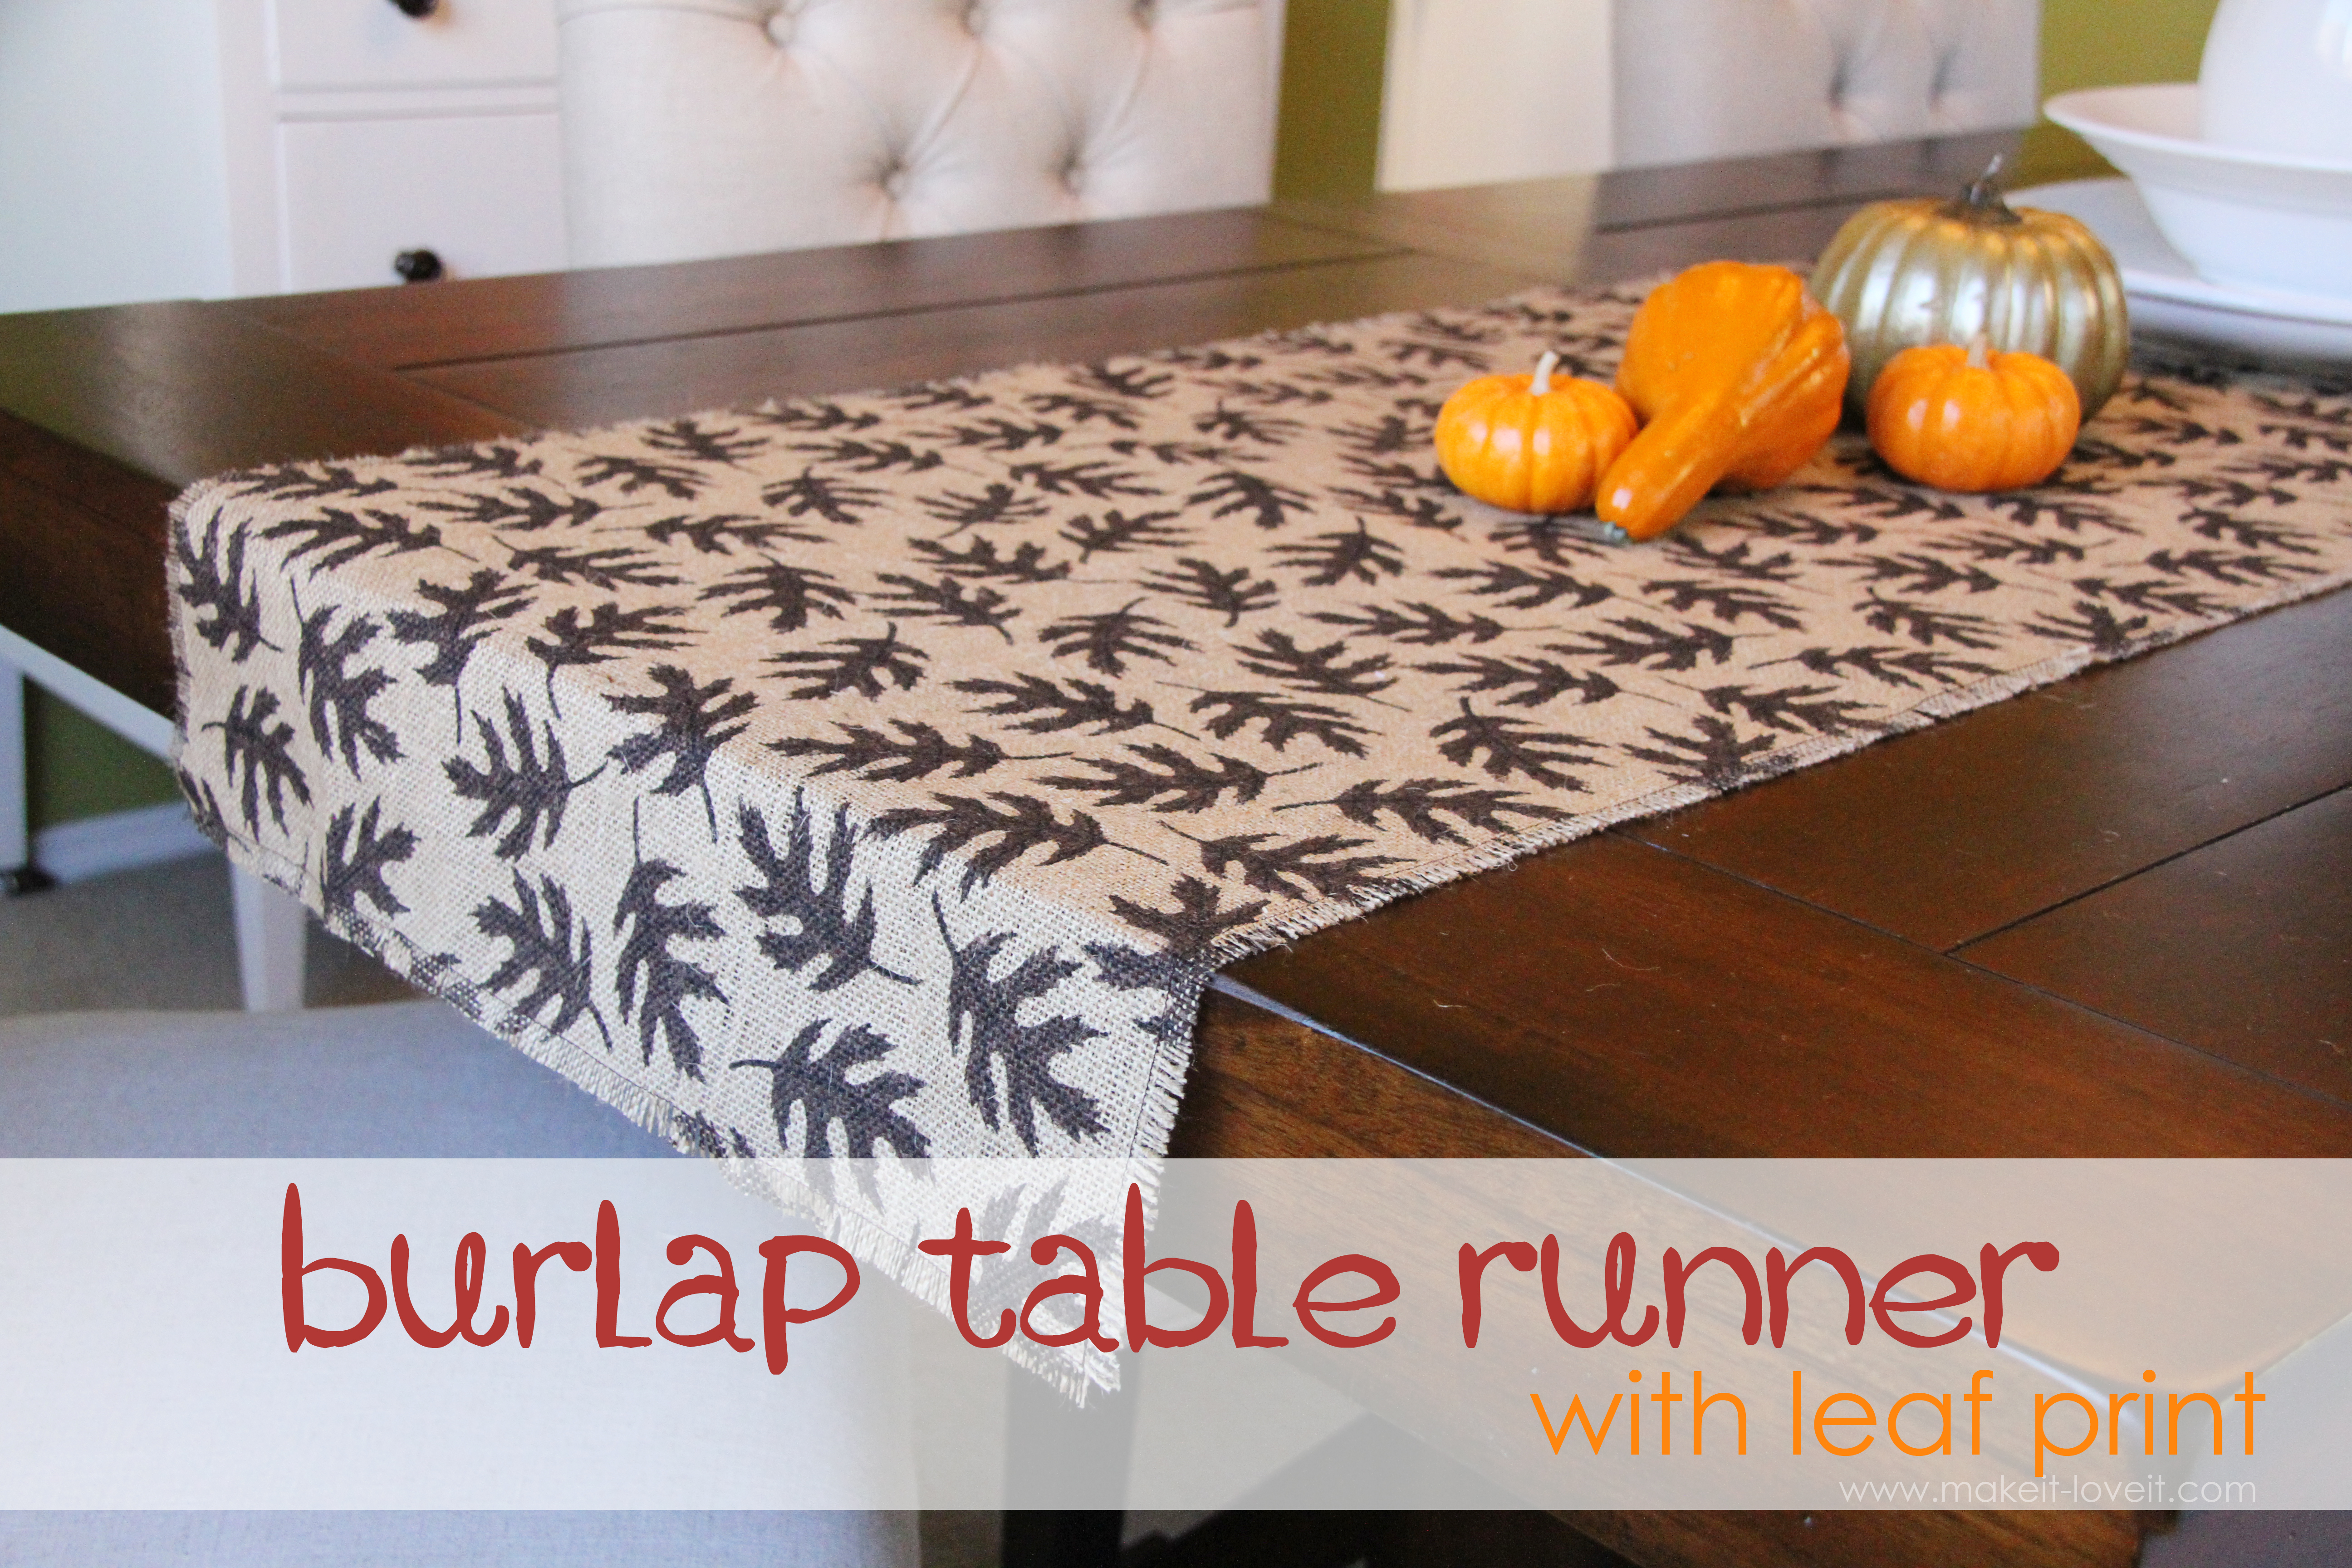 Fall Decor Burlap Table Runner with Leaf Prints Sew or No Sew